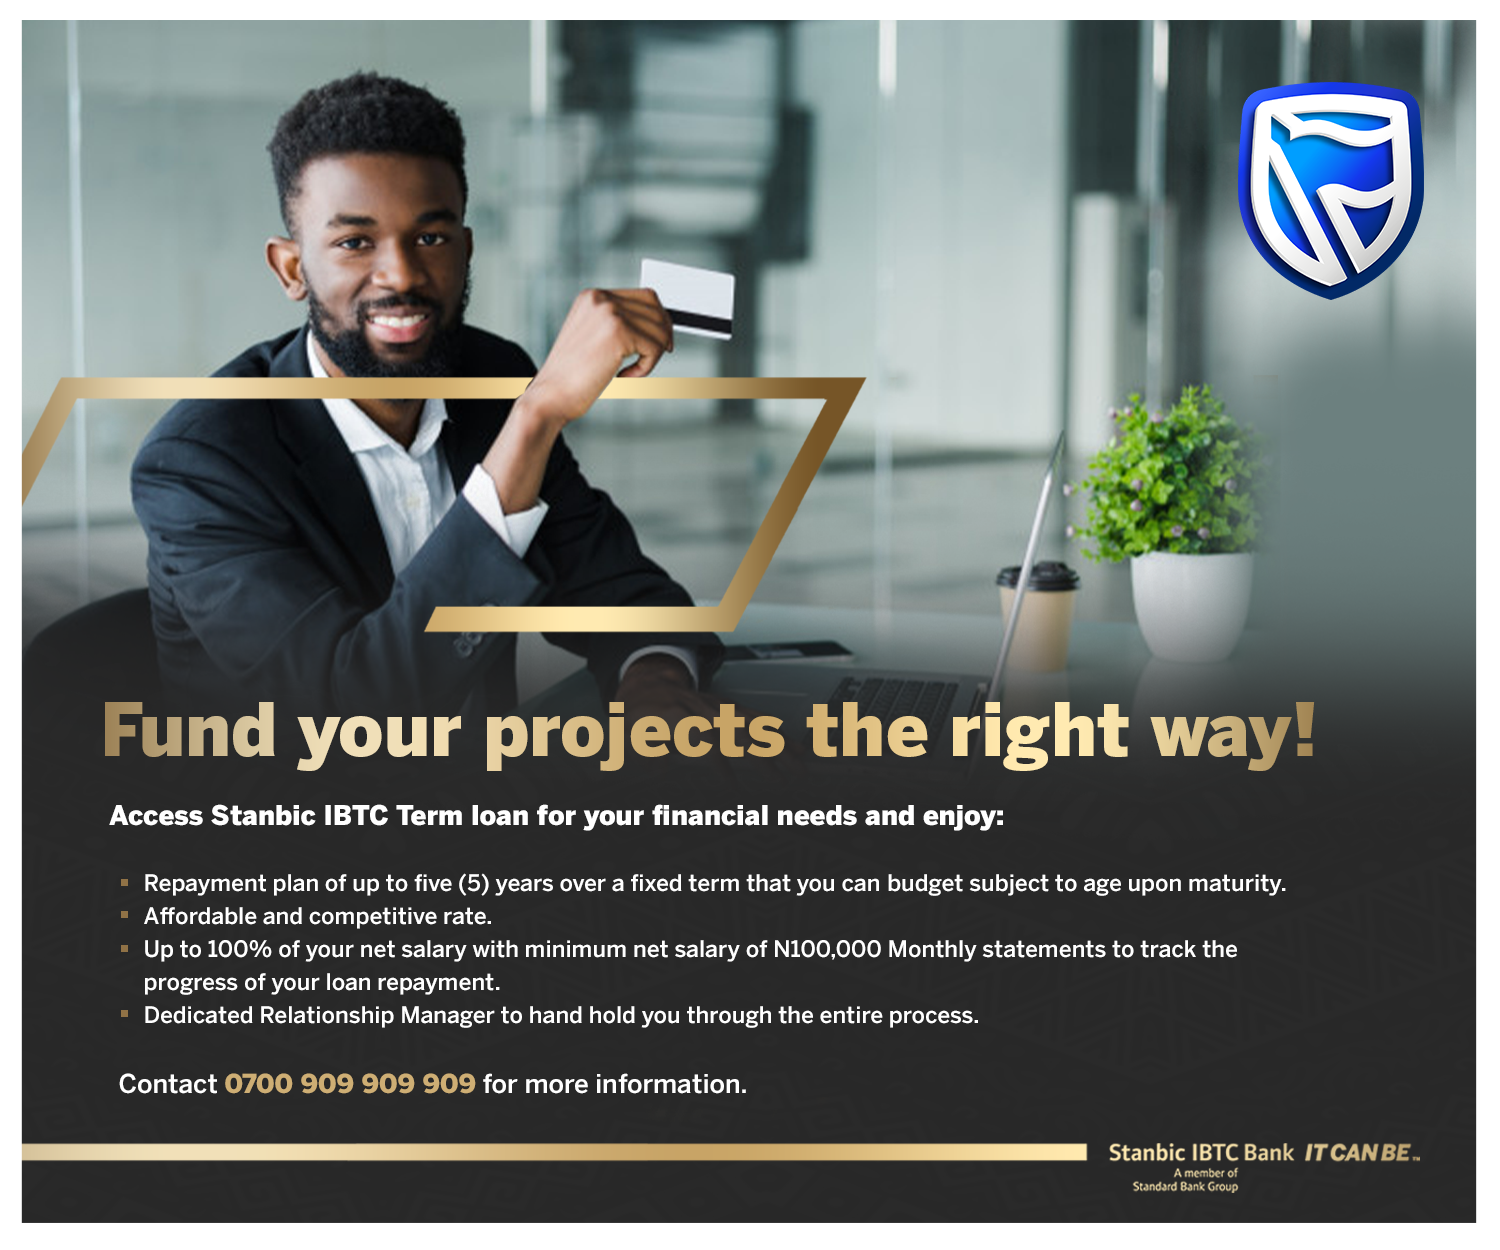 https://www.stanbicibtcbank.com/nigeriabank/personal/products-and-services/all-loans/secured-term-loans